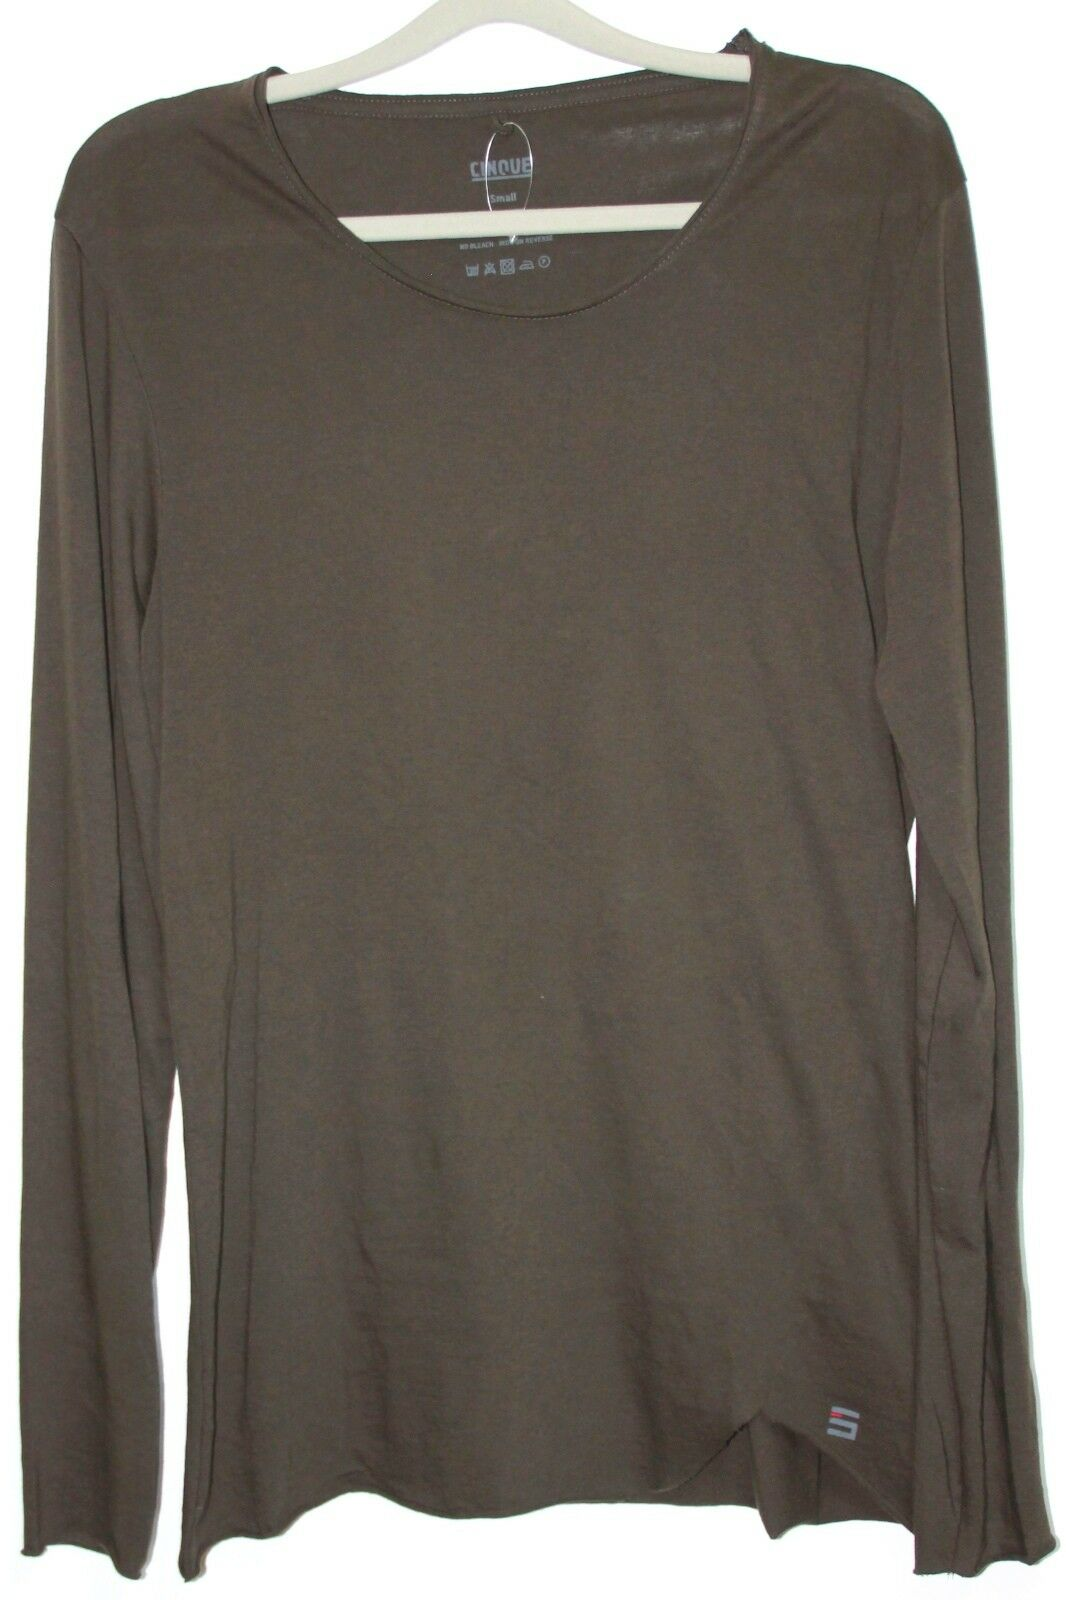 Cinque Shirt Men's Long-Sleeved Cigabiano in Olive SIZE L NEW with LABEL